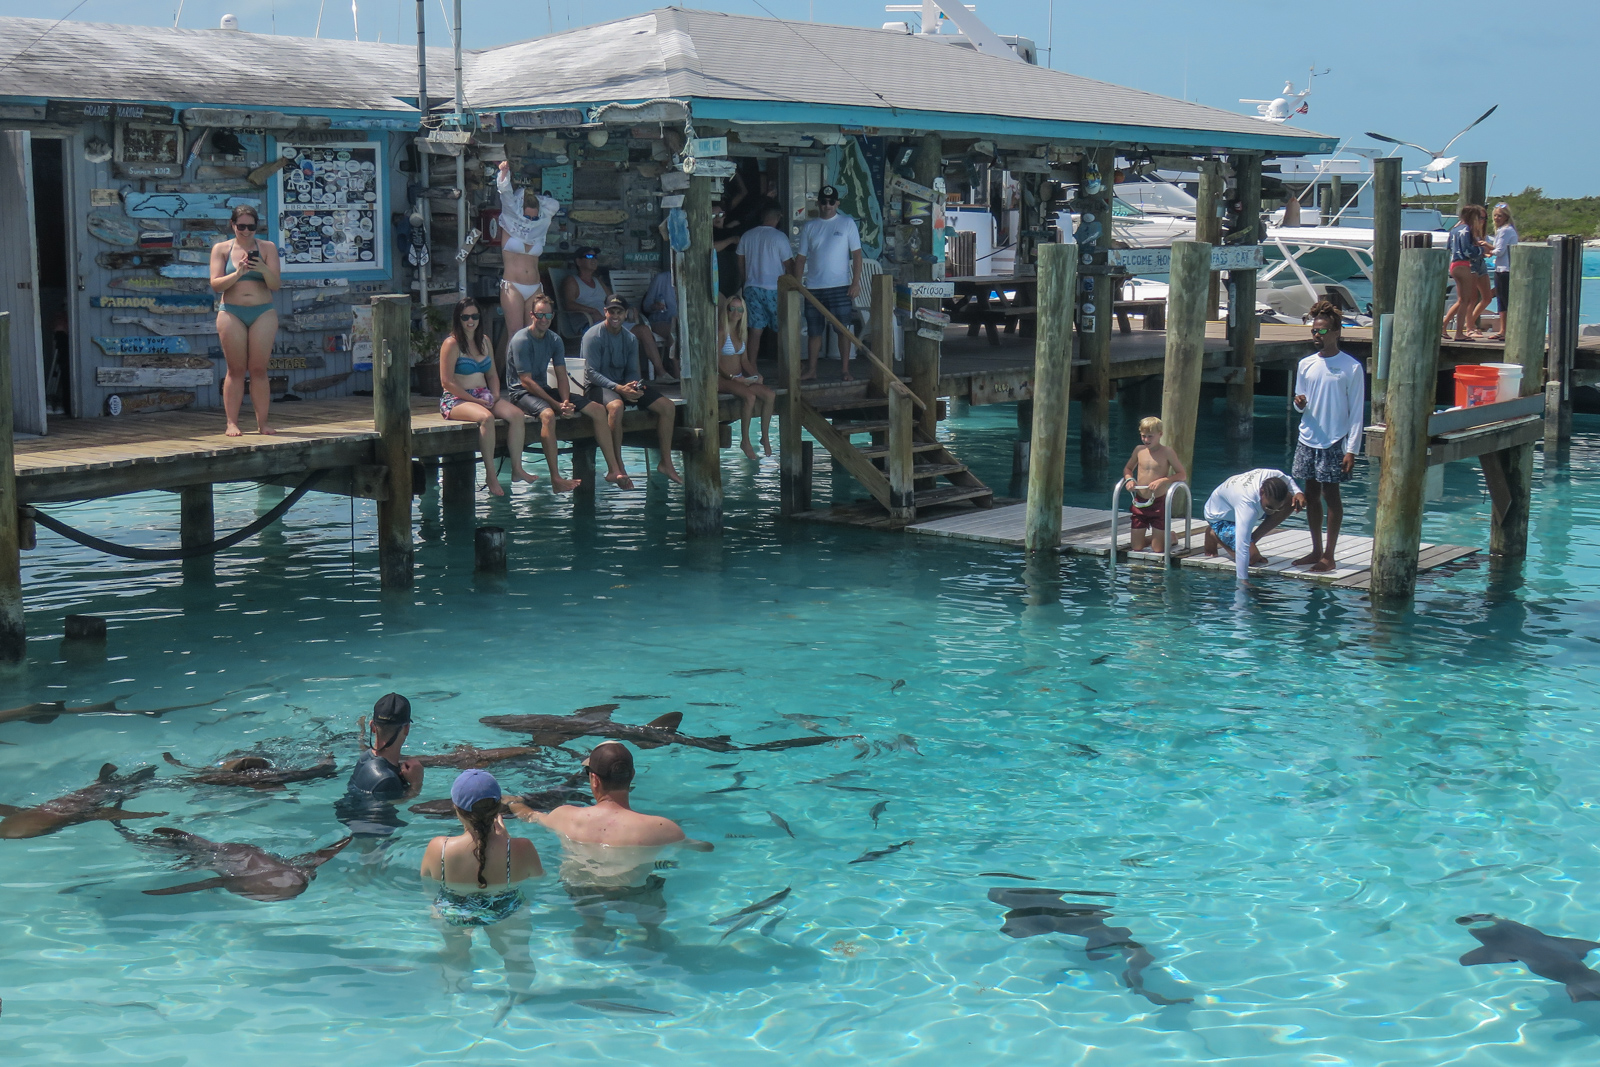 Staniel Cay Sharks Compass Cay day trip to Bahamas with Bahamas Air Tours